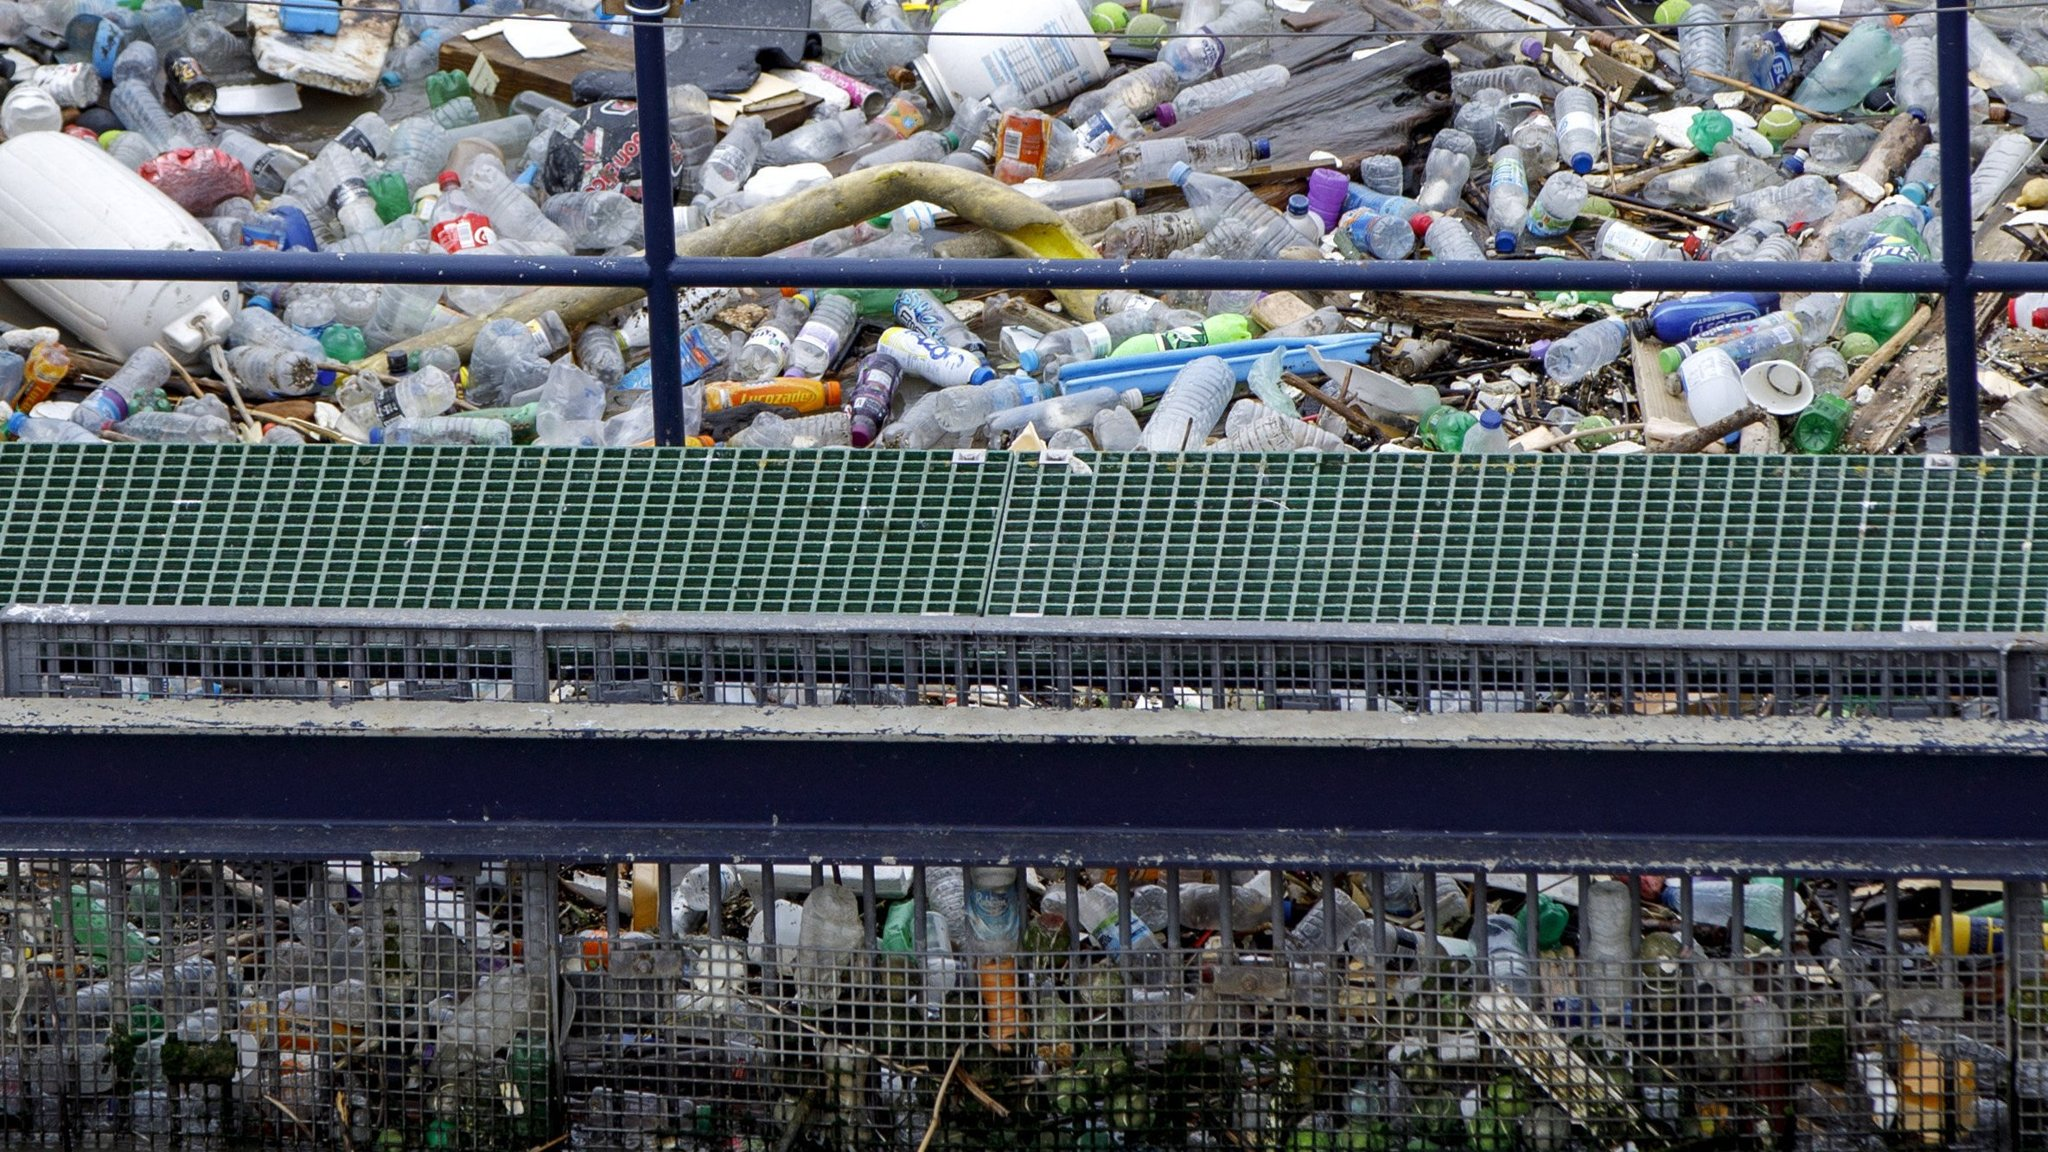 Plastics ban set to frustrate recycling exporters